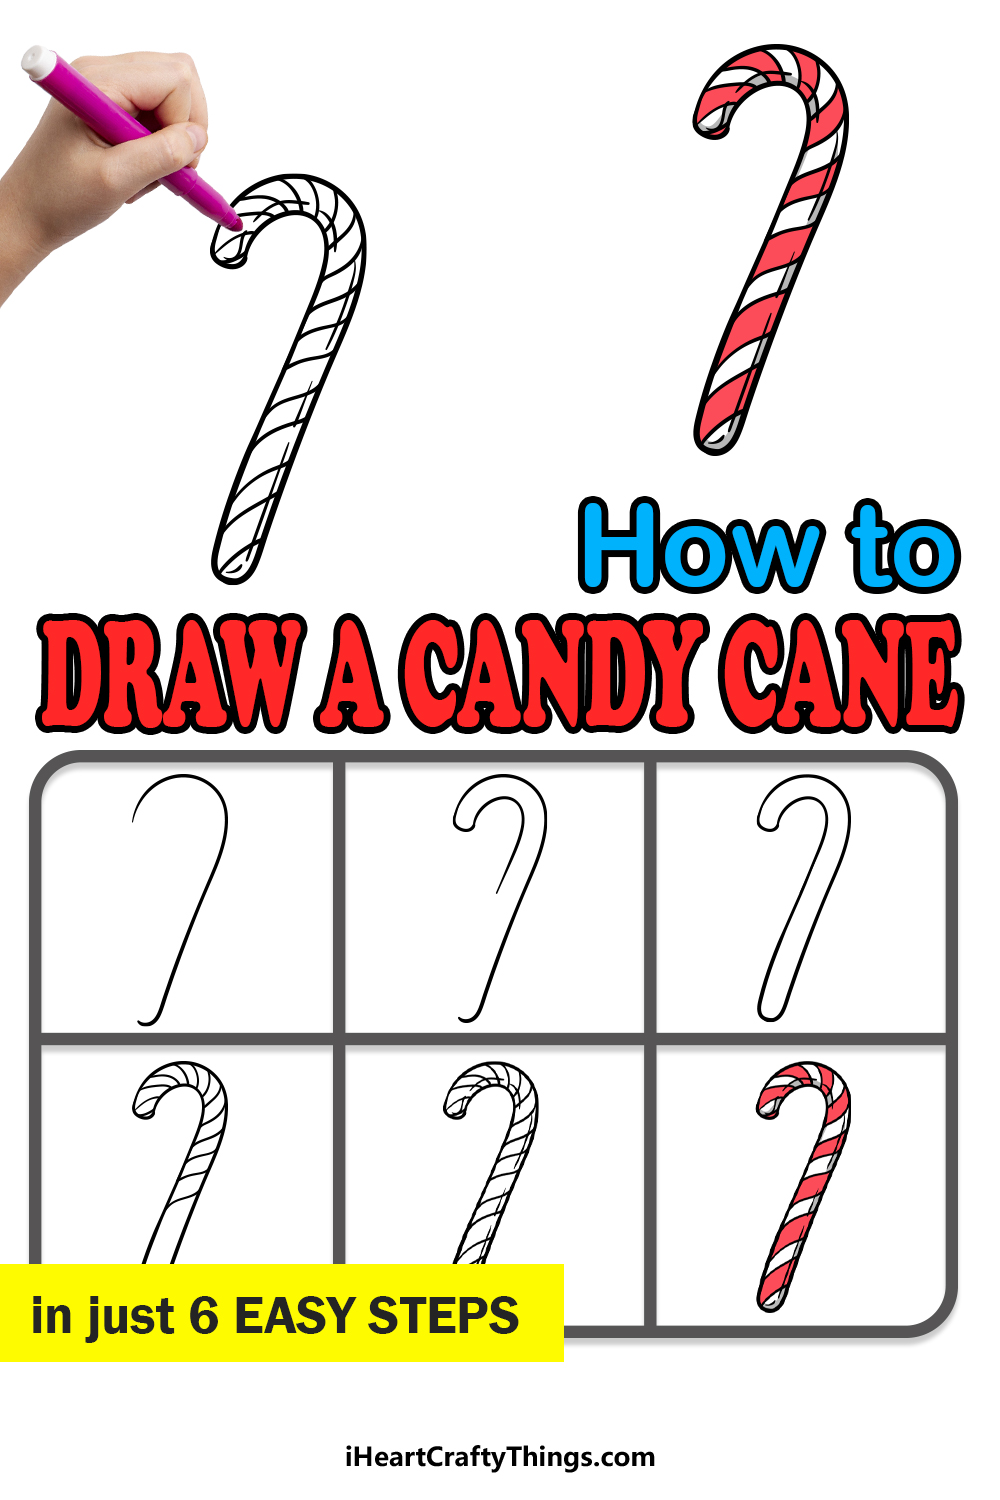 how to draw a candy cane in 6 easy steps